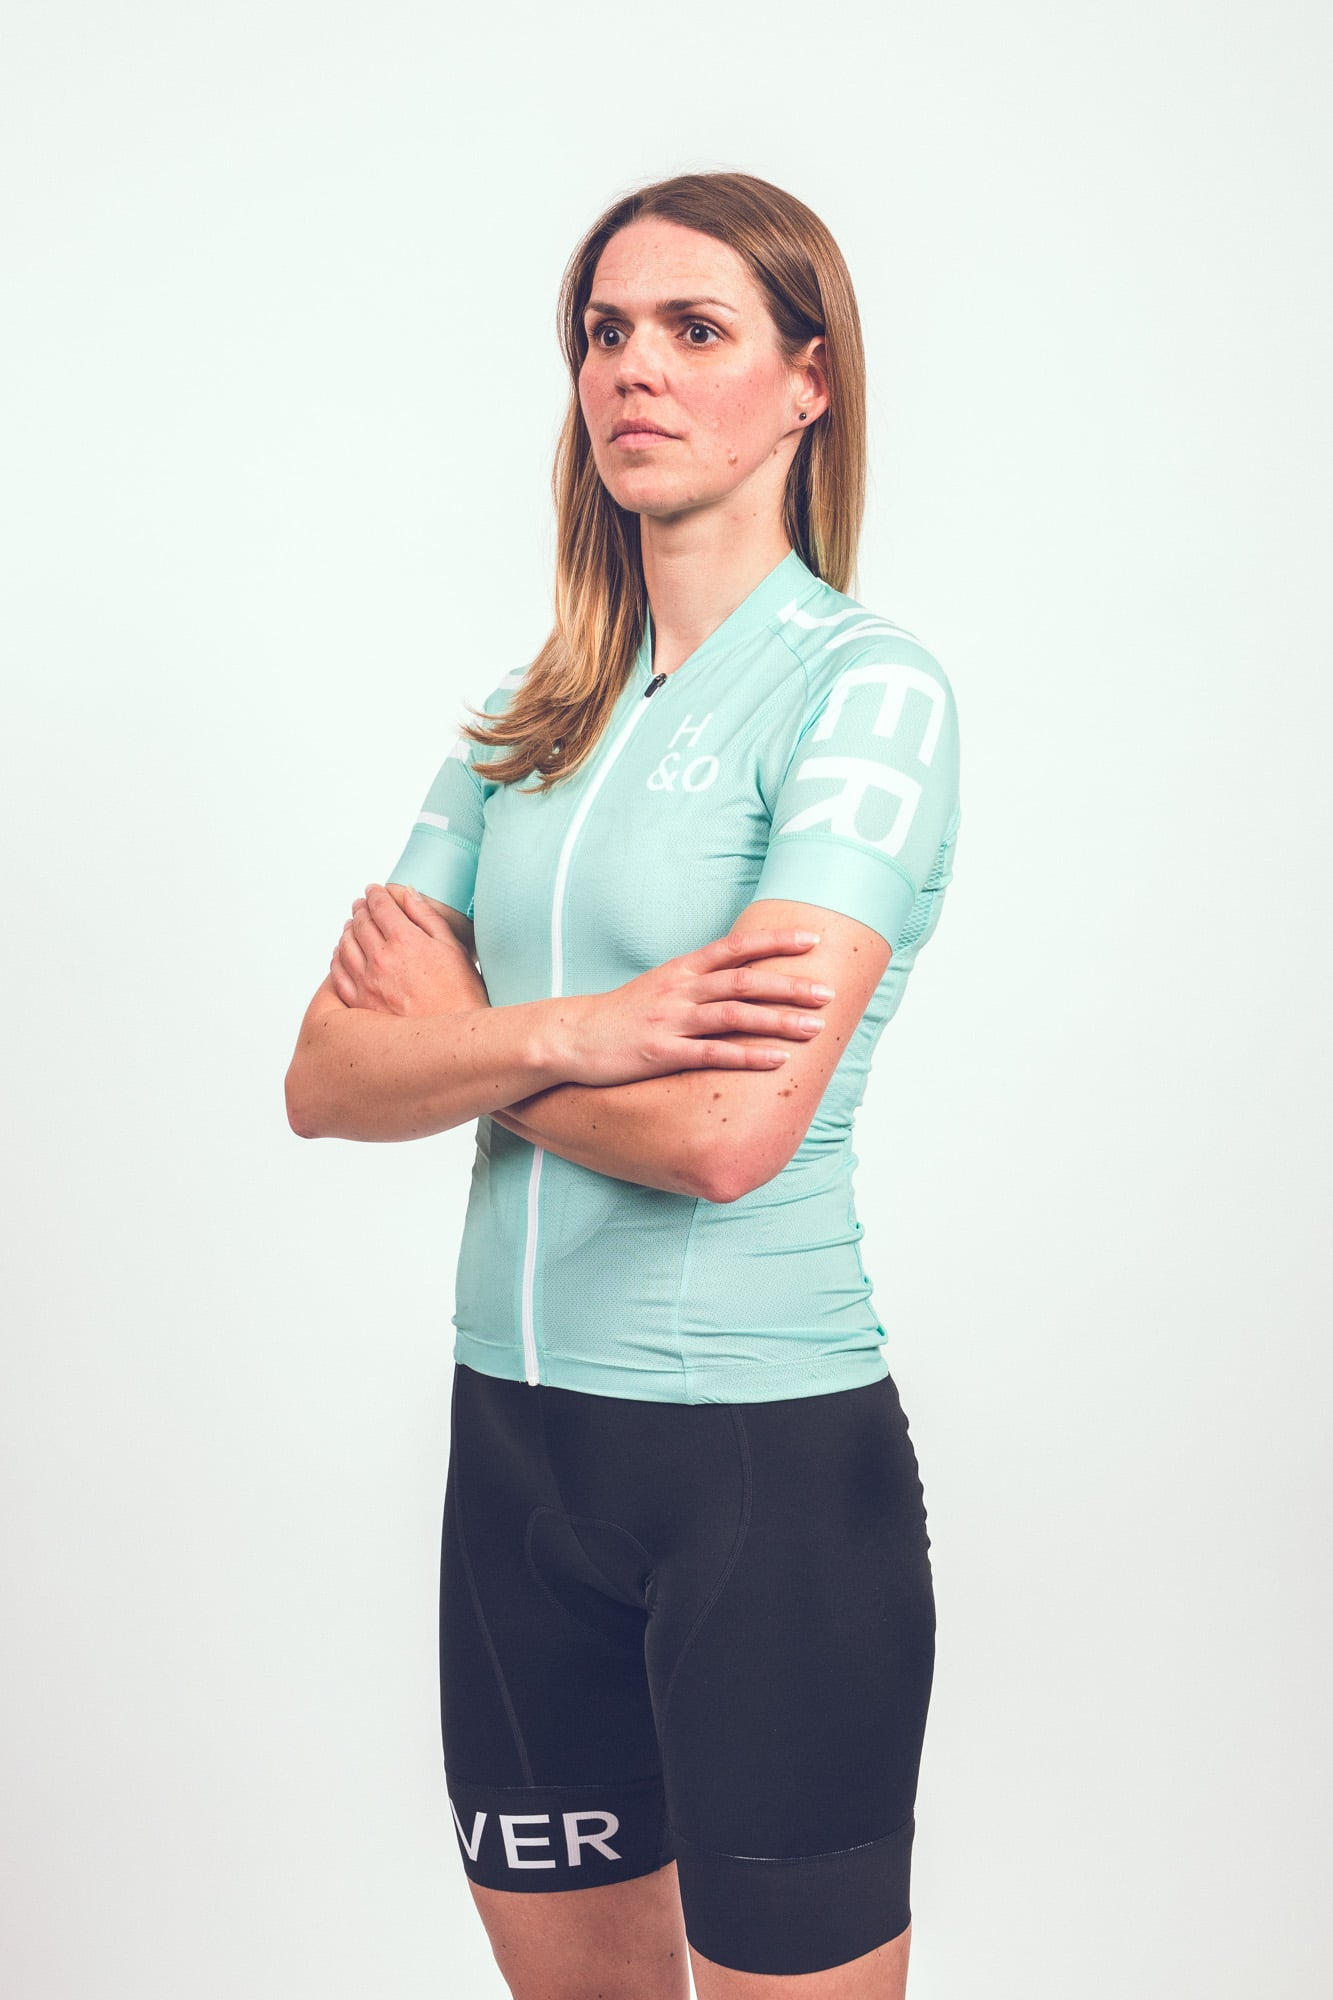 HIGH and OVER copper women cycling jersey